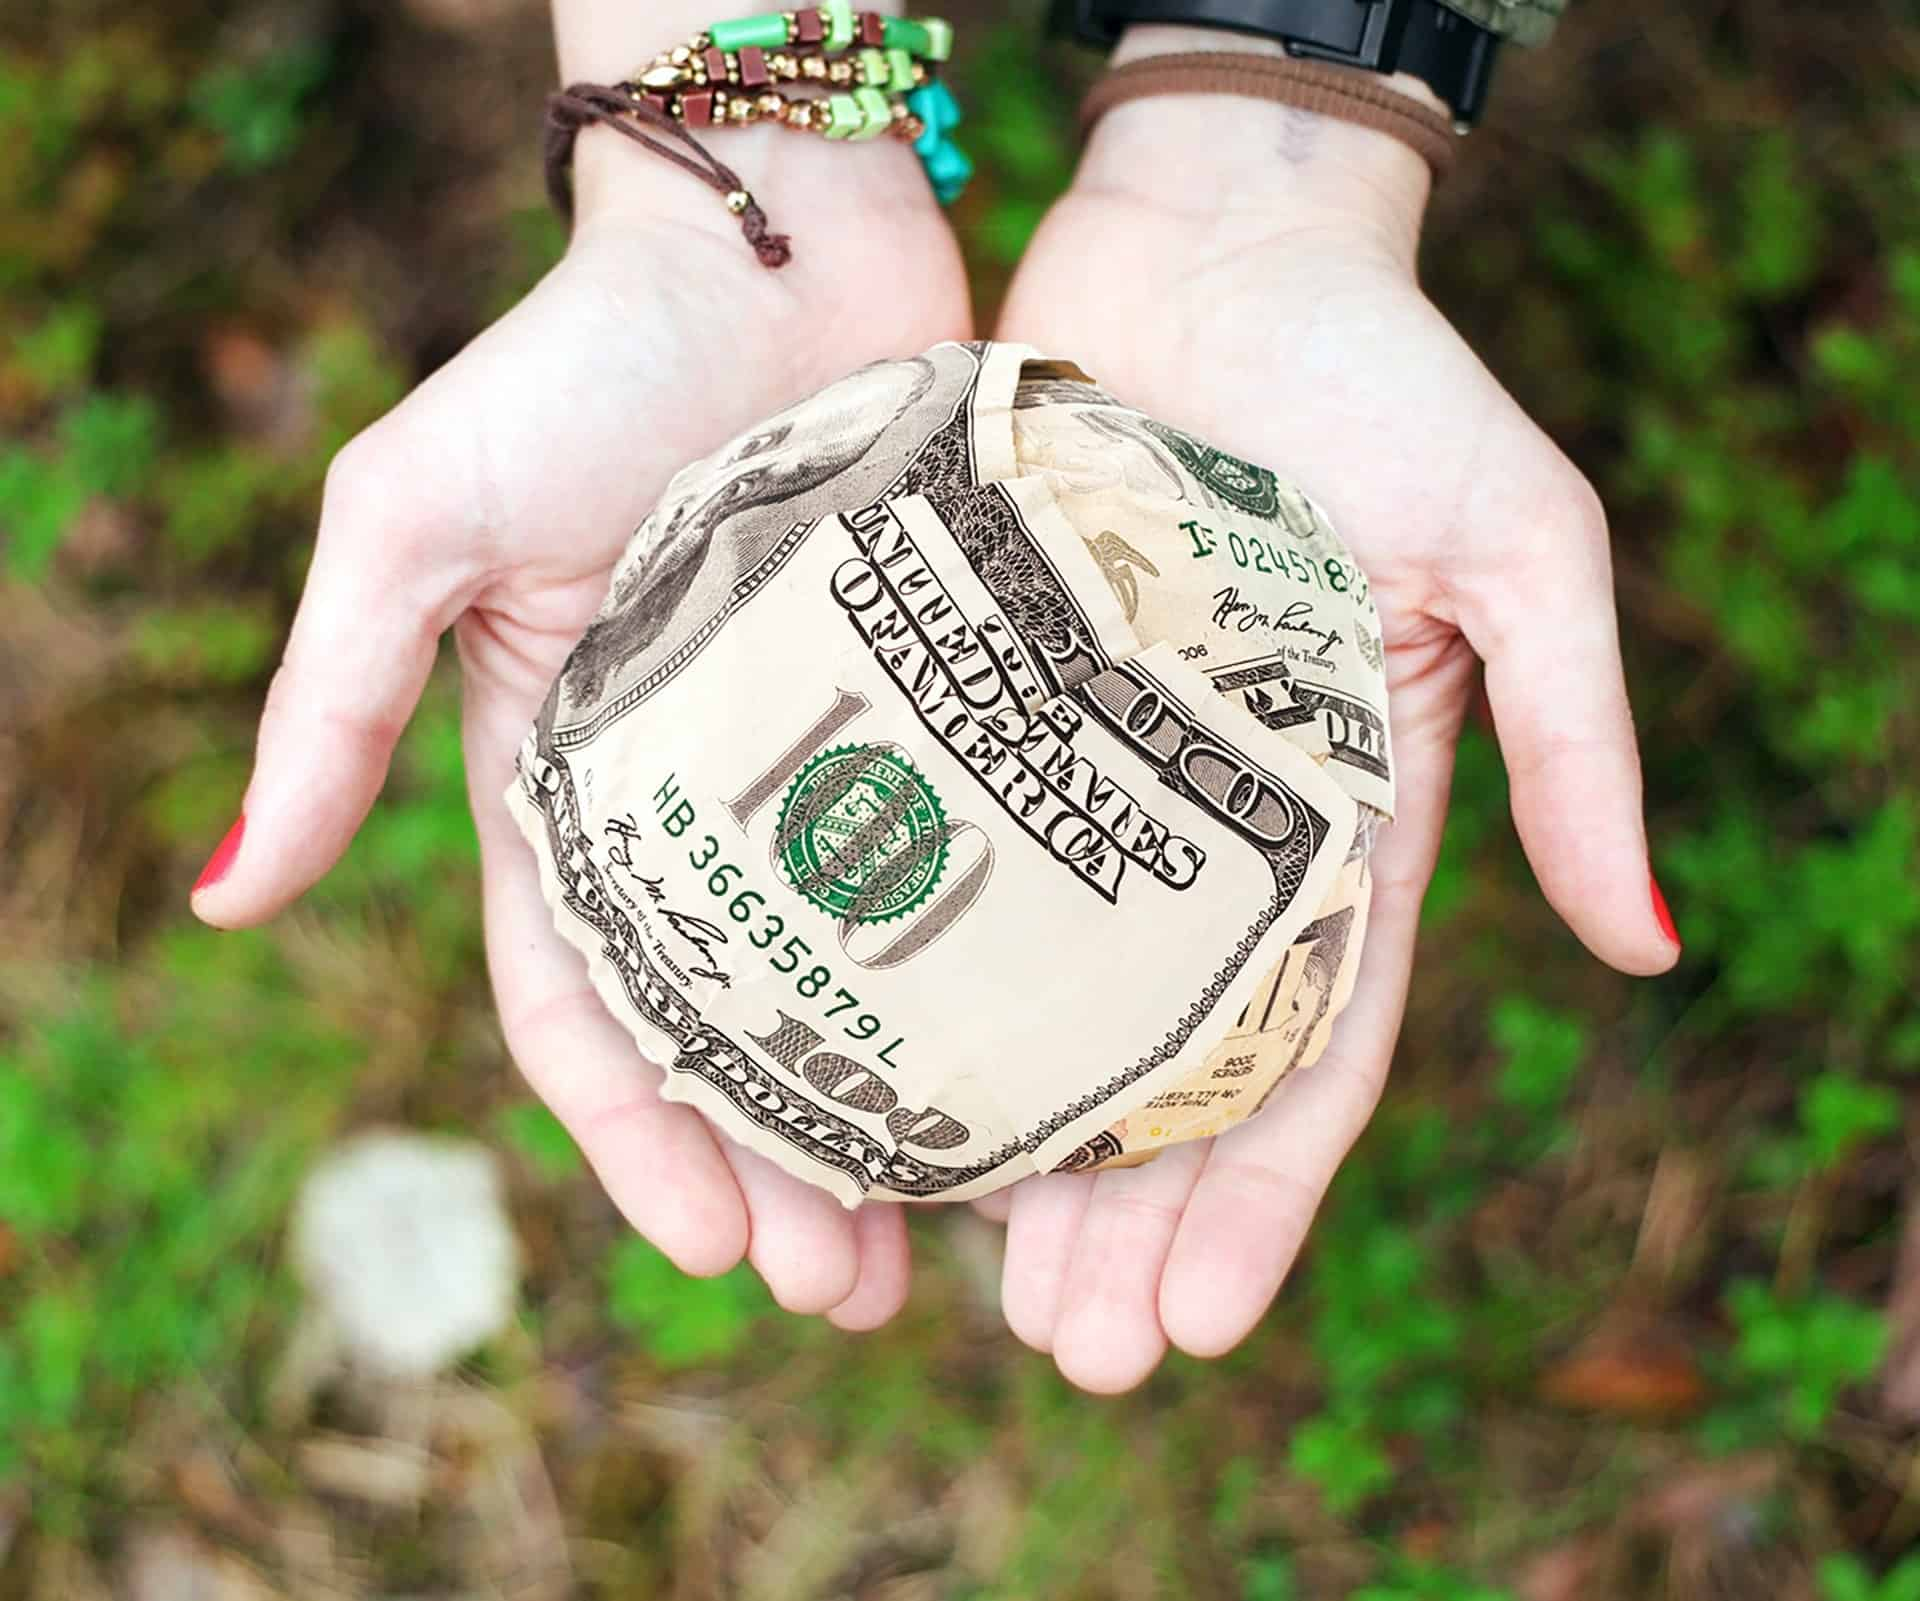 woman holding a ball made out of money